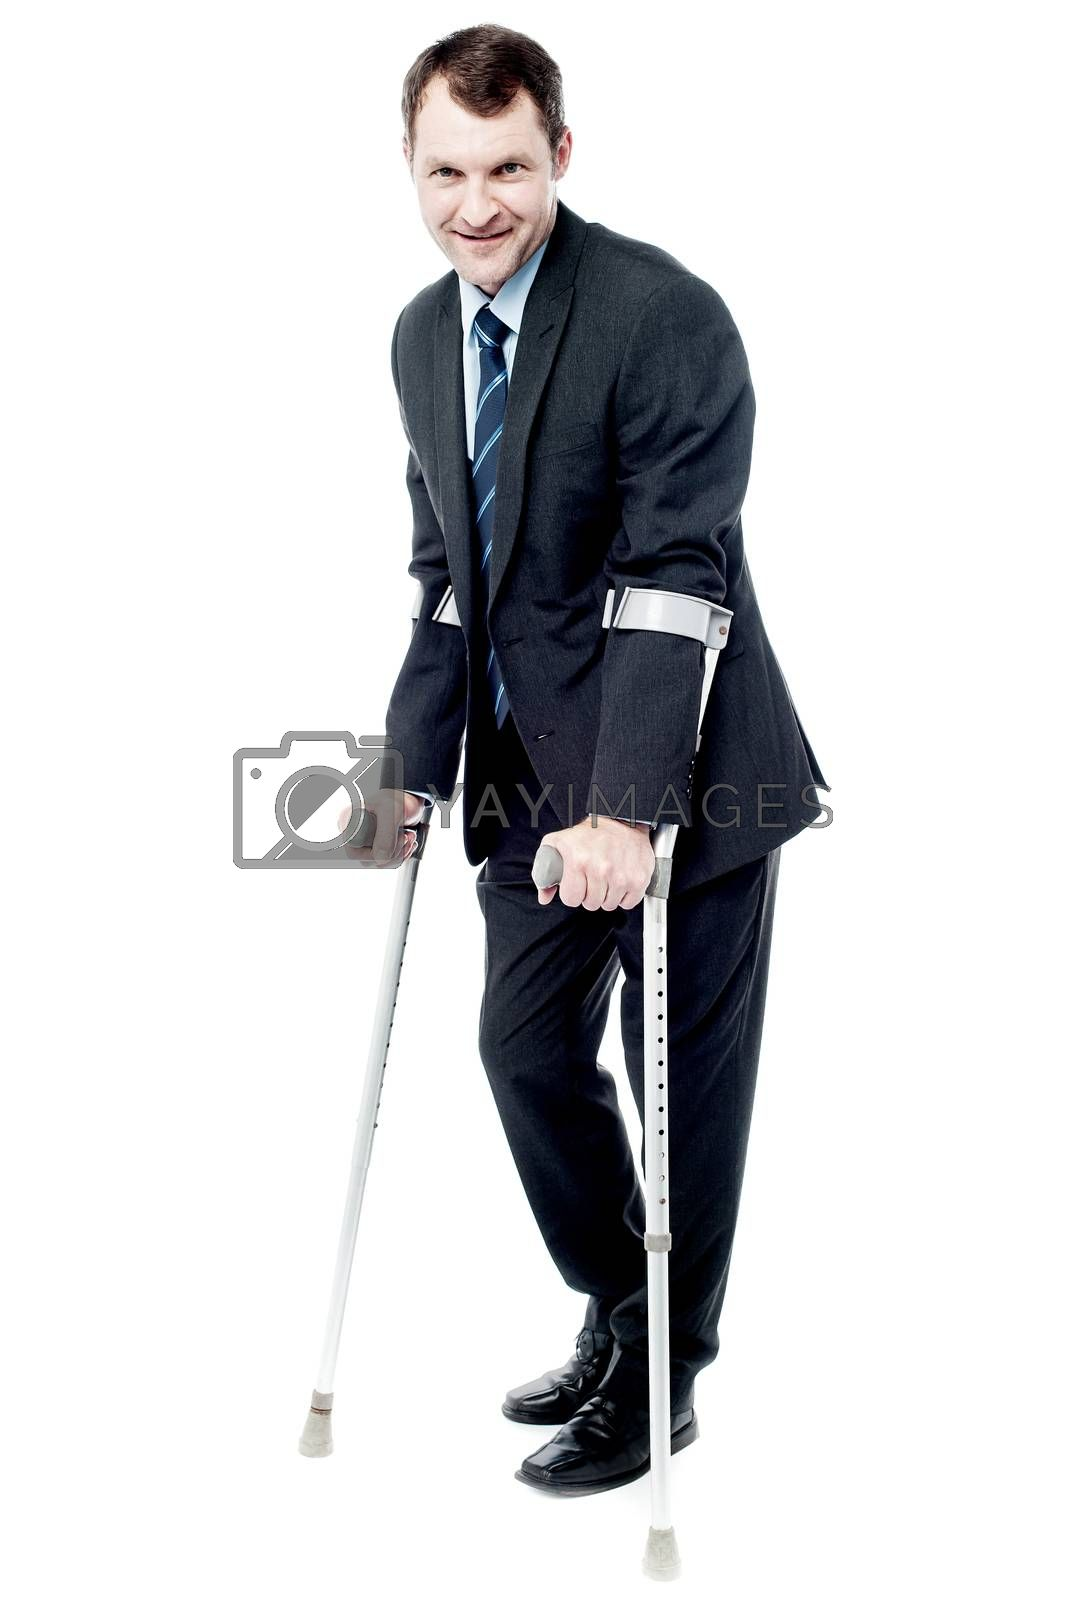 Confident businessman walking with crutches